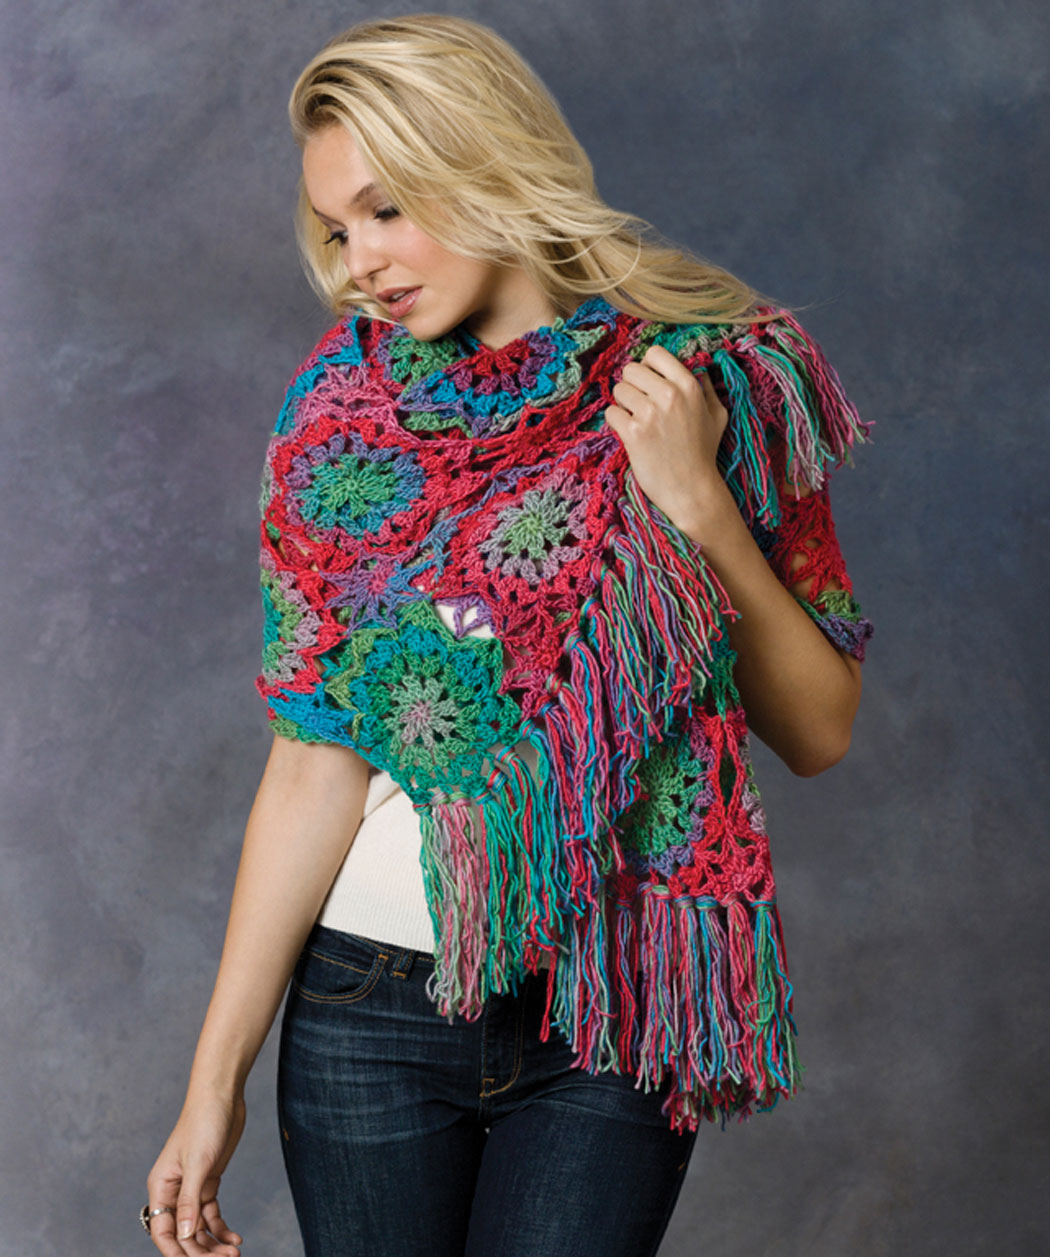 unforgettable heart This red heart boutique unforgettable yarn is soft roving yarn has amazing colors and creates fantastic garments and accessories that look like they cost a fortune.